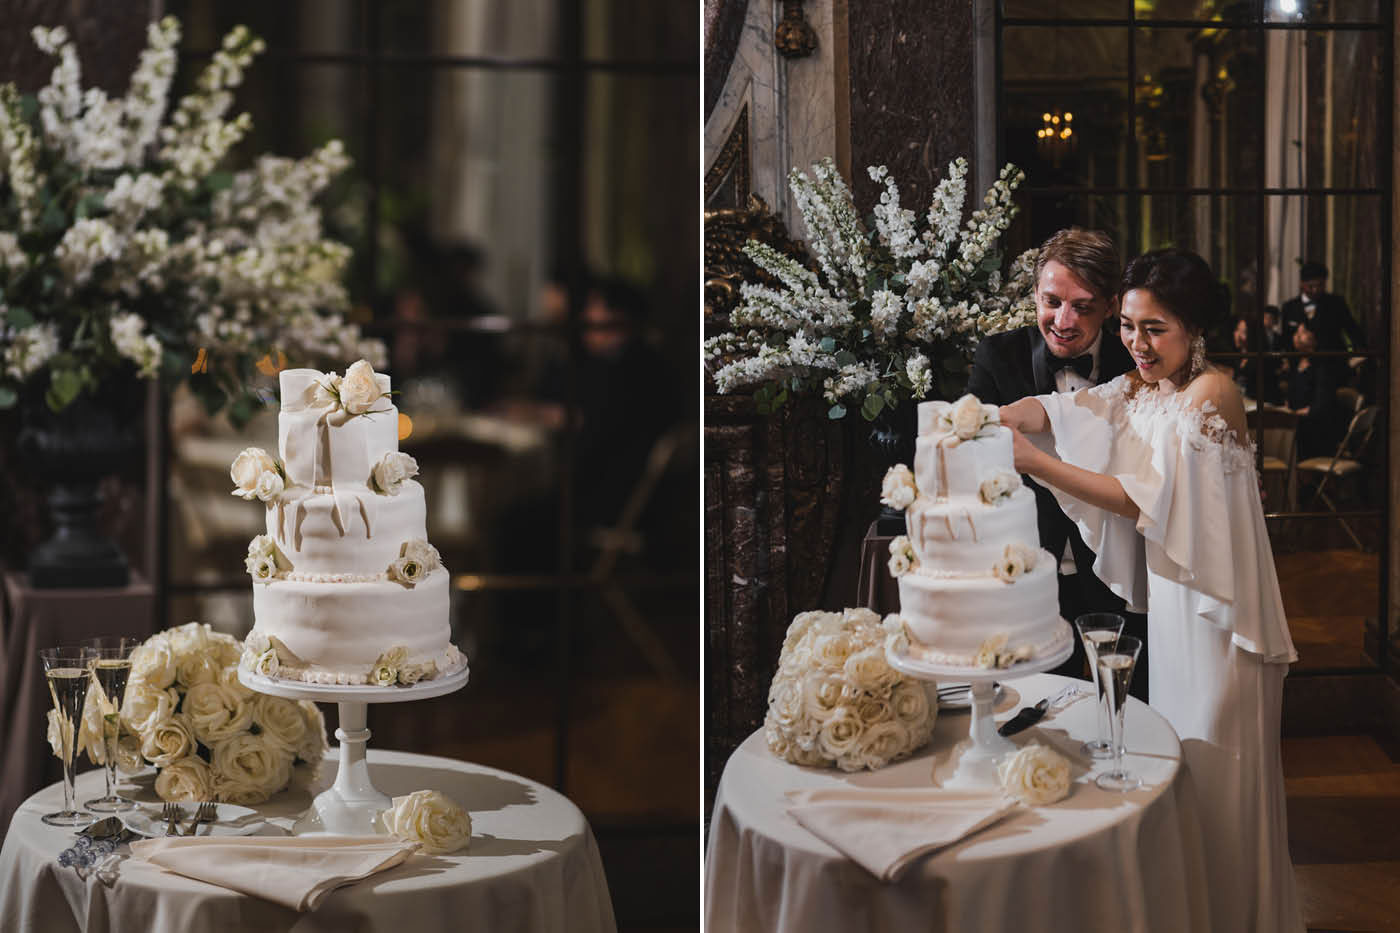 cake cutting at the James Burden Kahn Mansion by Weddings by Hanel